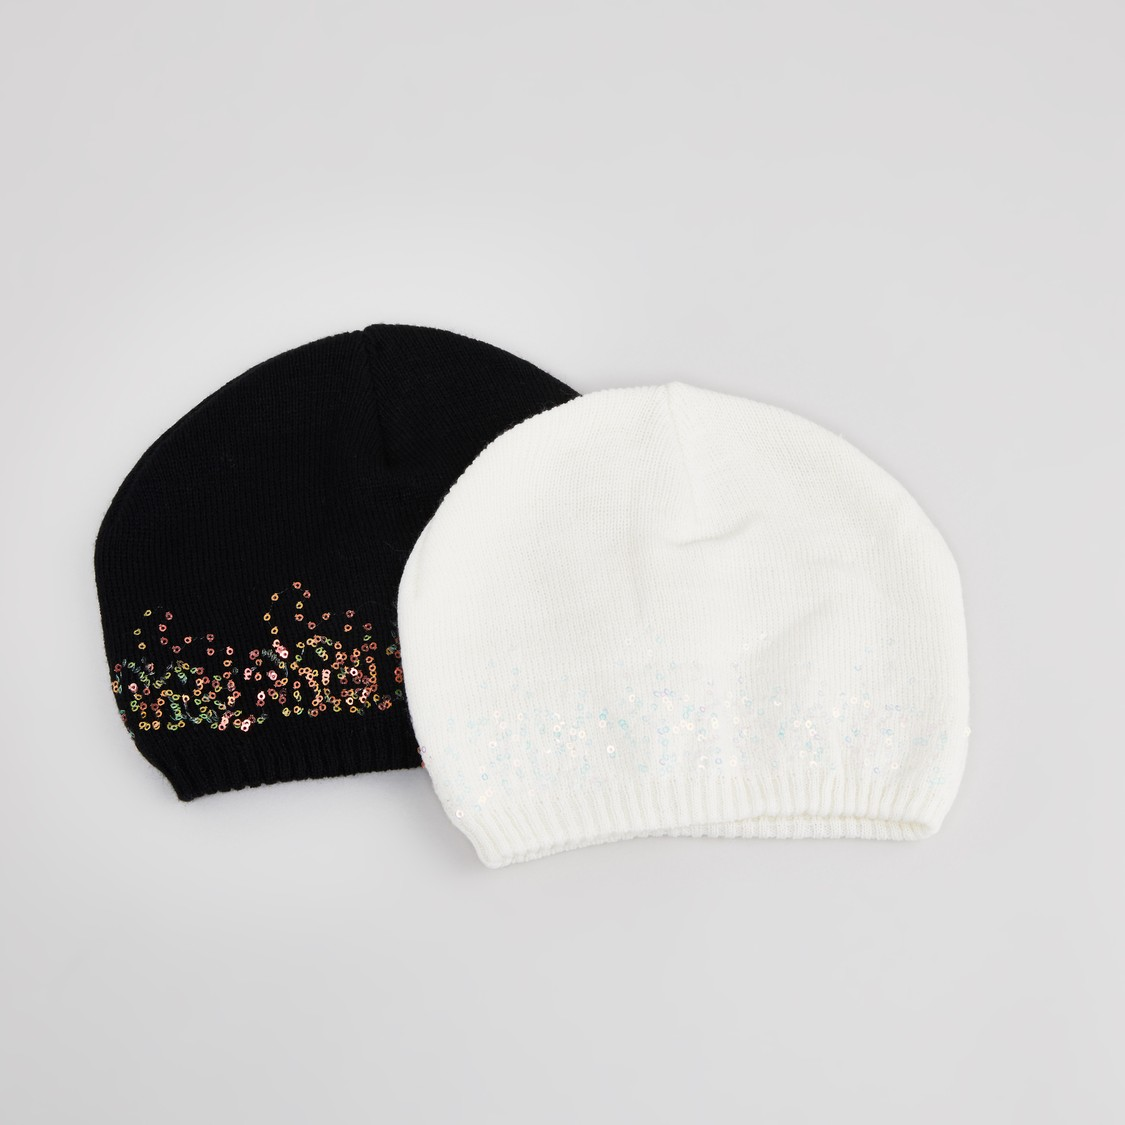 Set of 2 - Textured Beanie Caps with Sequin Detail